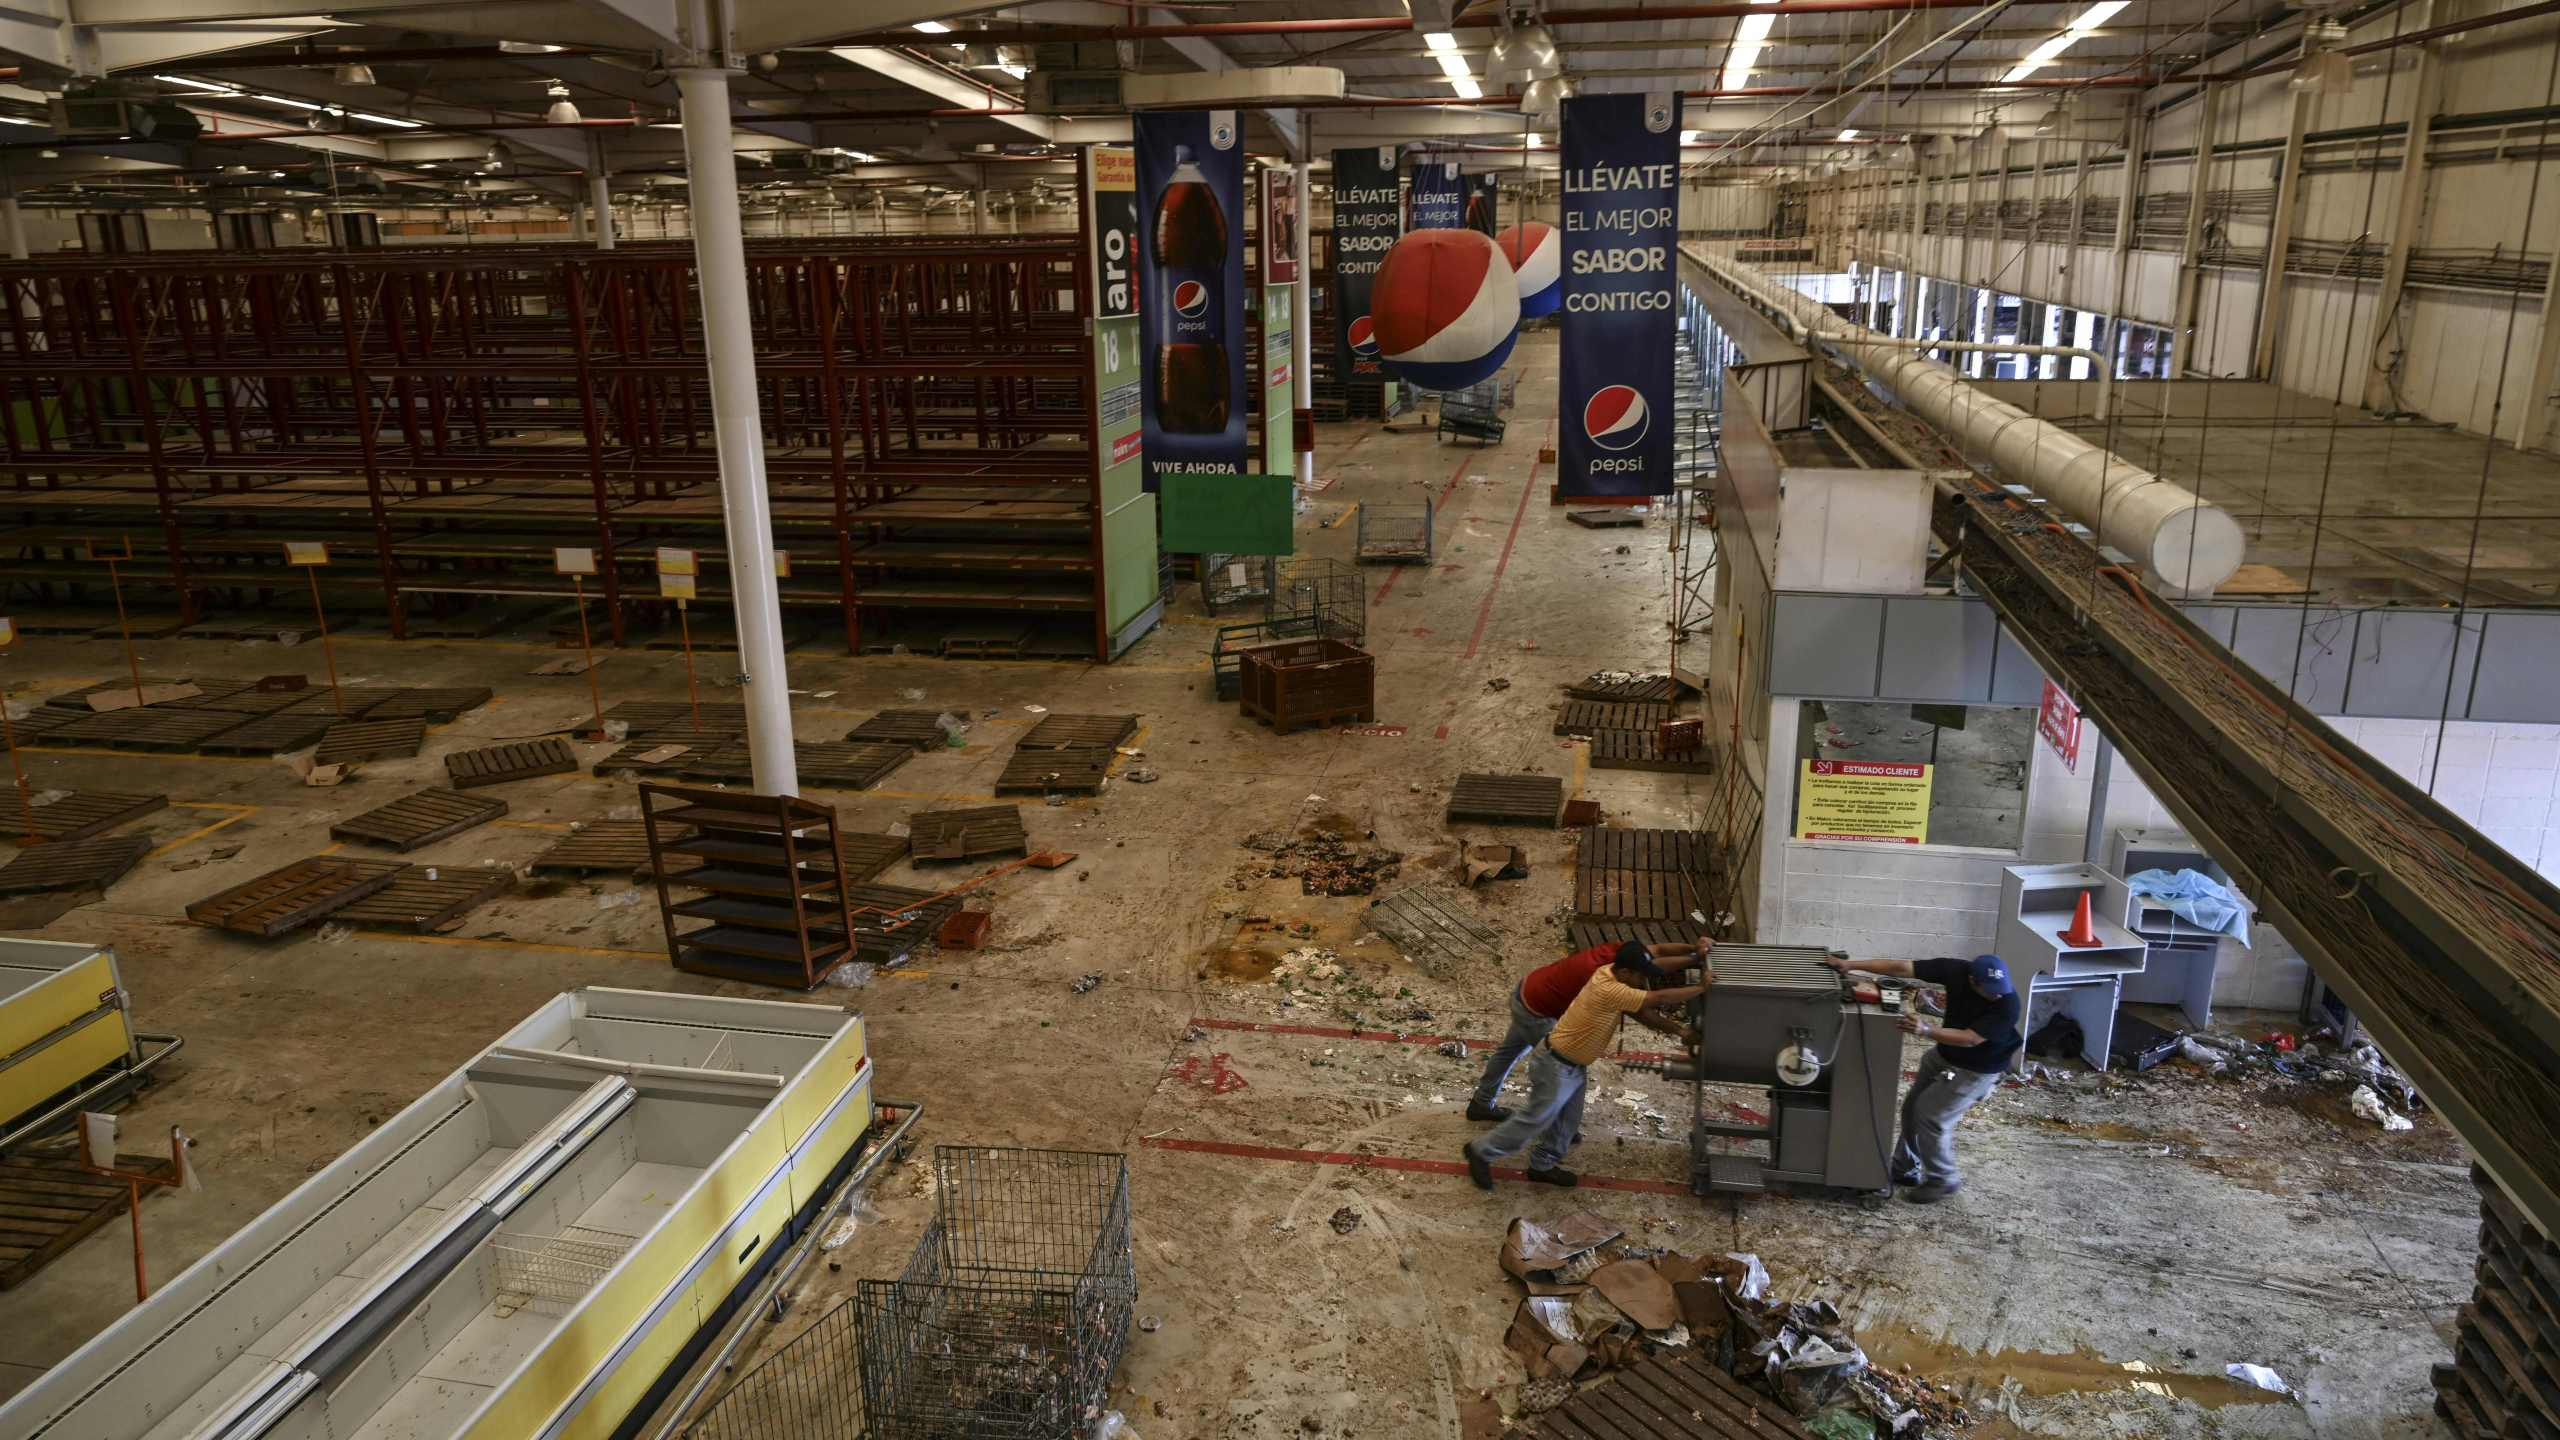 A wholesale supermarket that was looted during a massive blackout in Maracaibo, Venezuela, on March 13, 2019.(Credit: Juan Barreto/AFP/Getty Images)